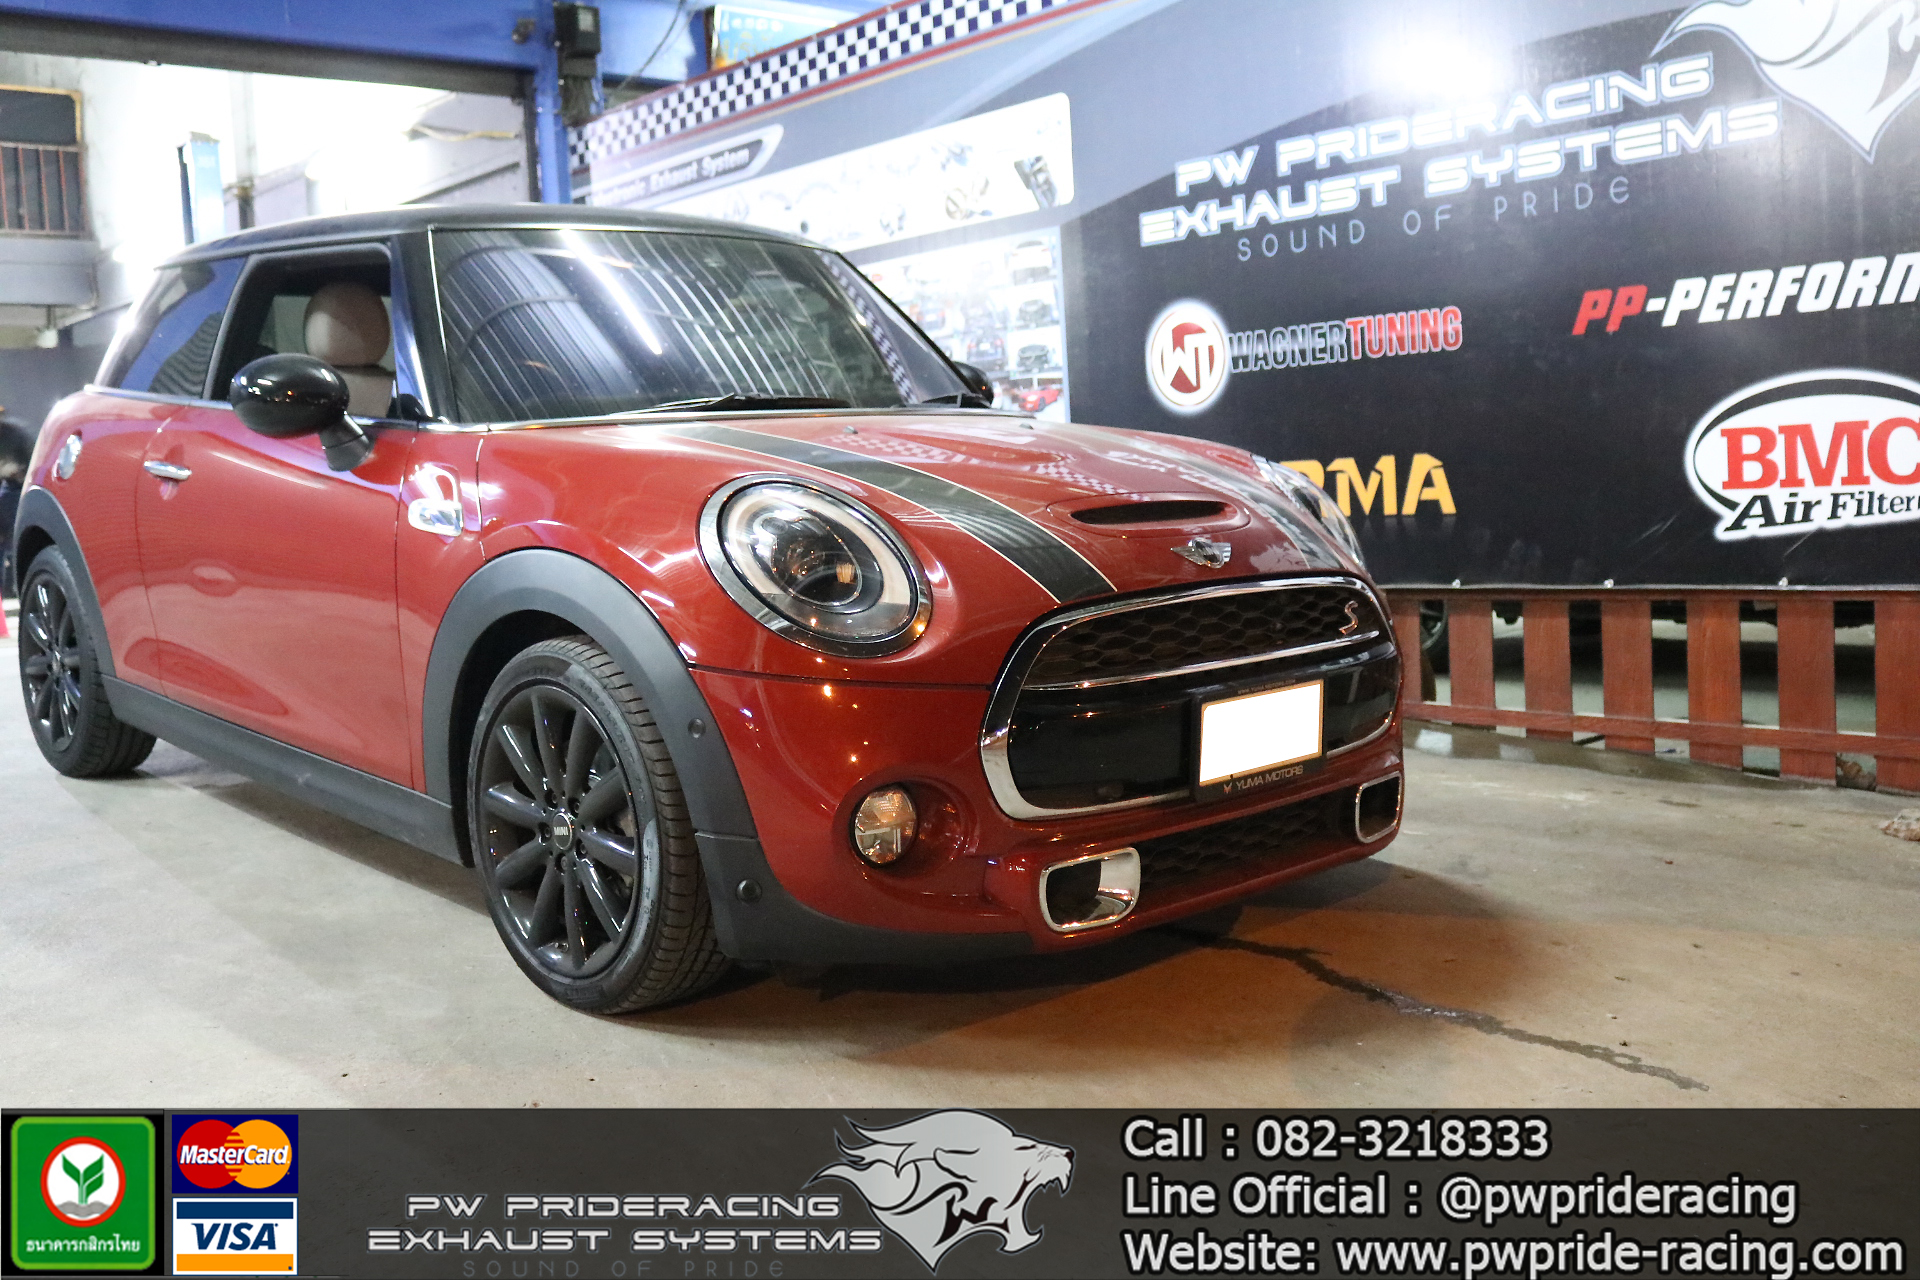 ชุดท่อไอเสีย MINI Coopers F56 Valvetronic Exhaust System